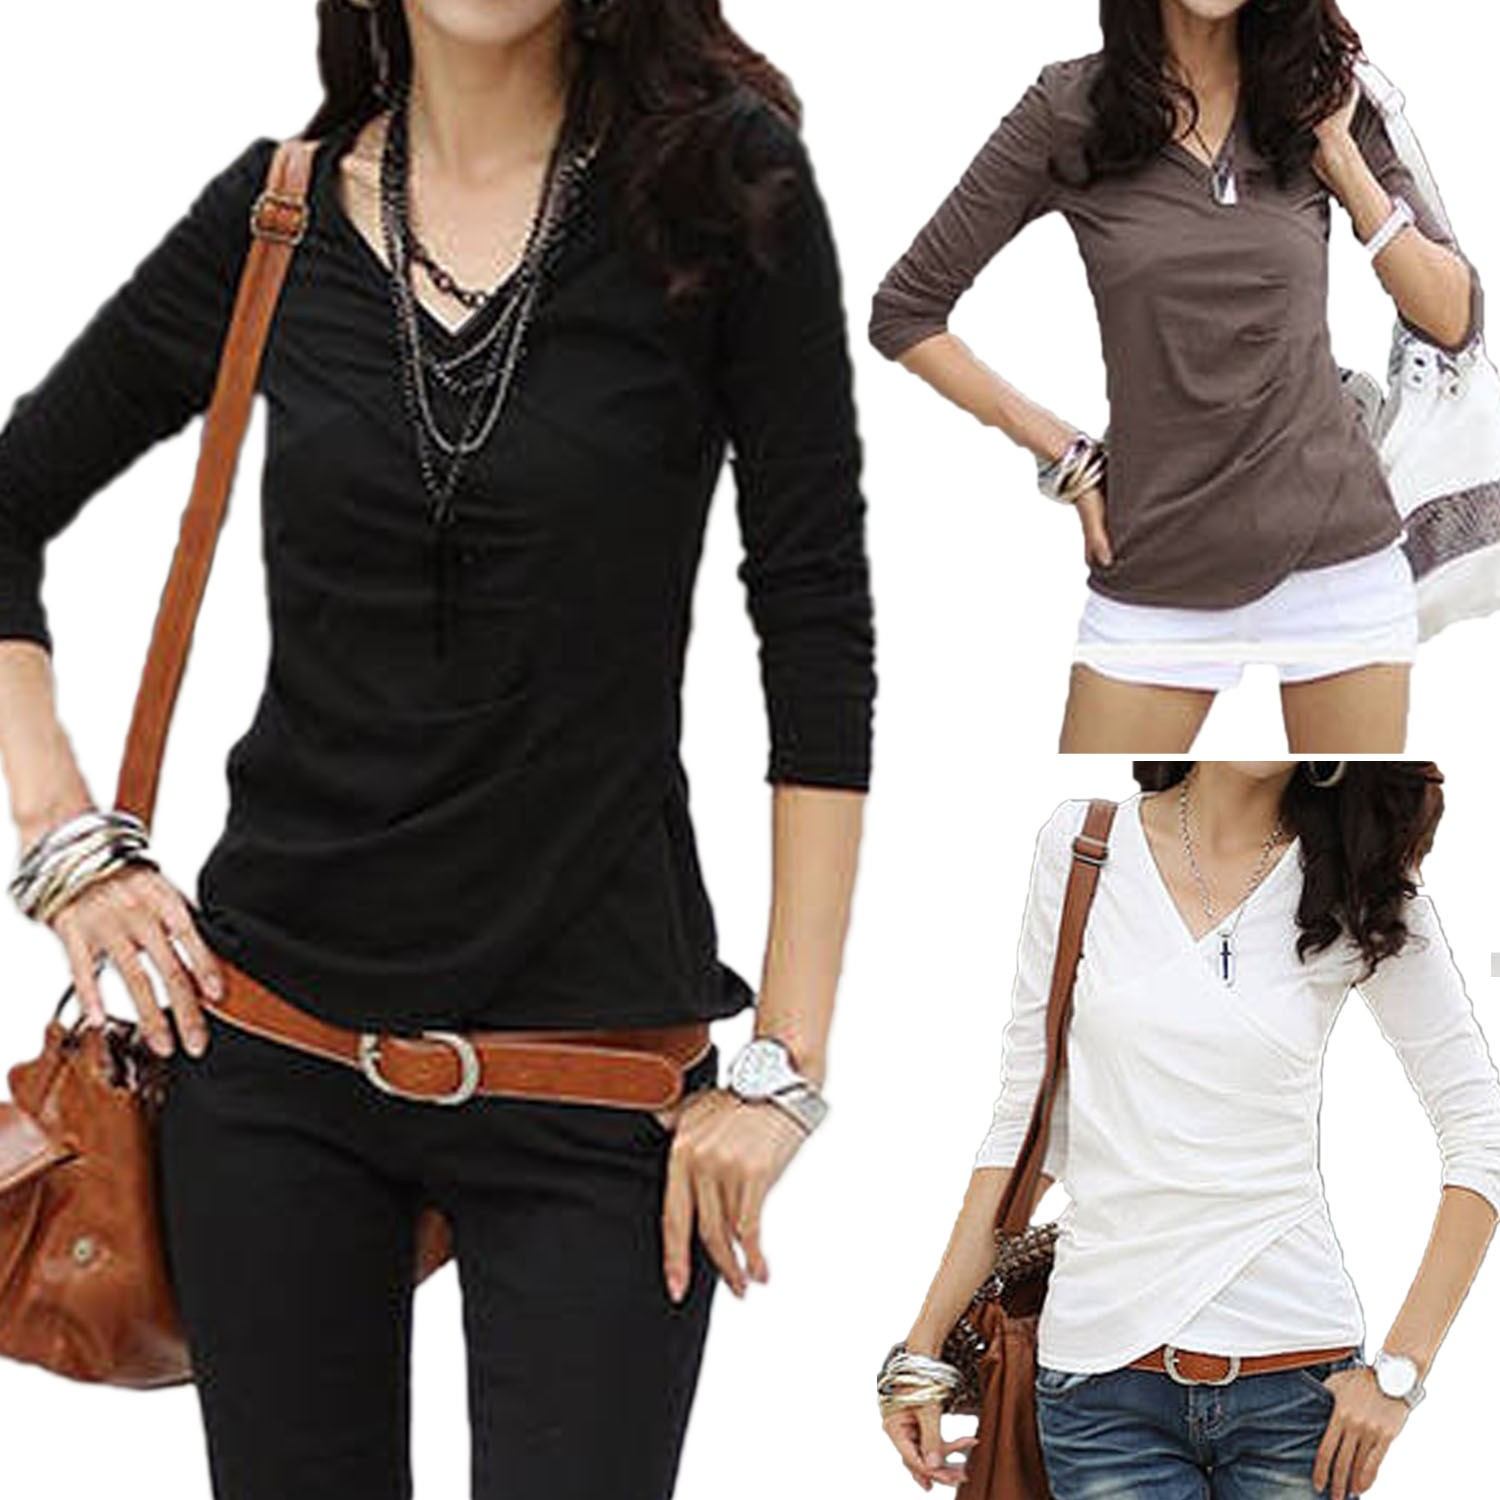 Womens Black/White/Brown V Neck Wrap Shirt Top Blouse Long Sleeve XS-L 0 2 4 6